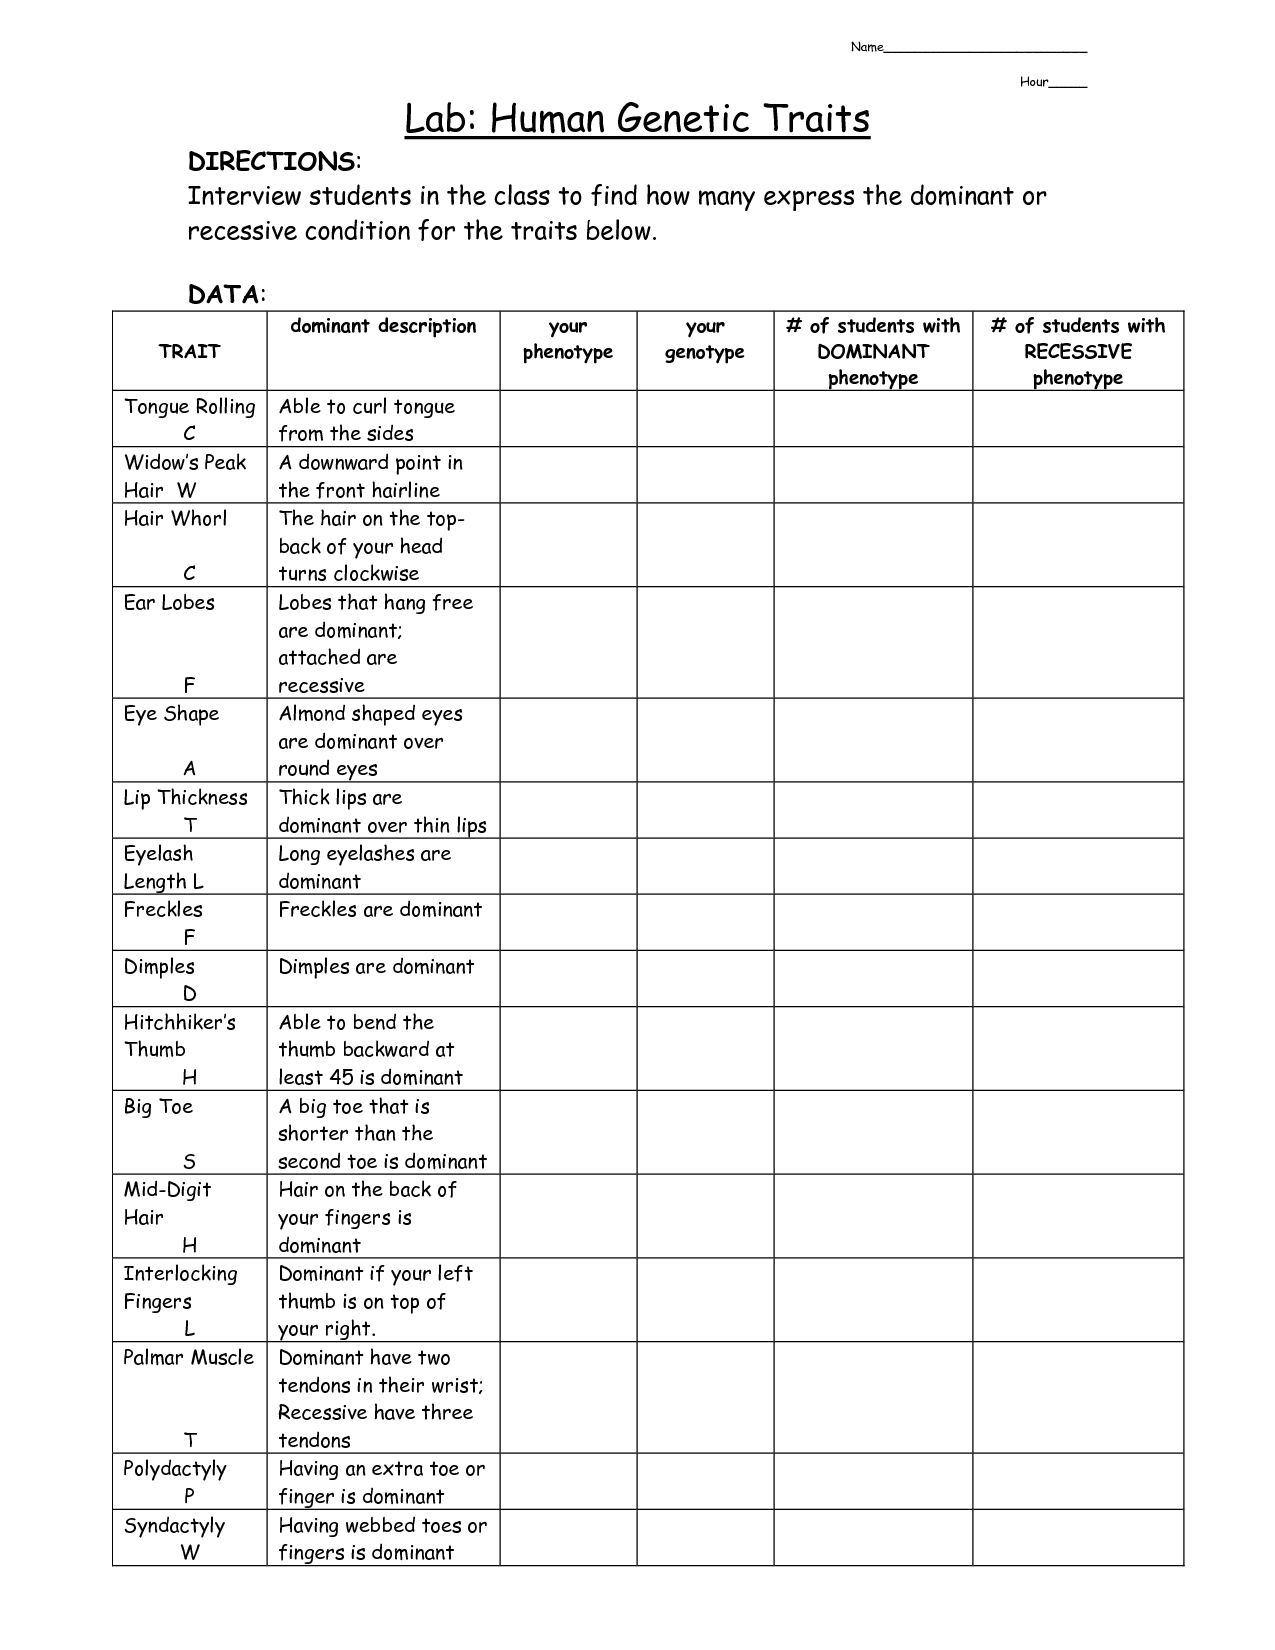 11 Best Images Of Pedigree Worksheet Answers